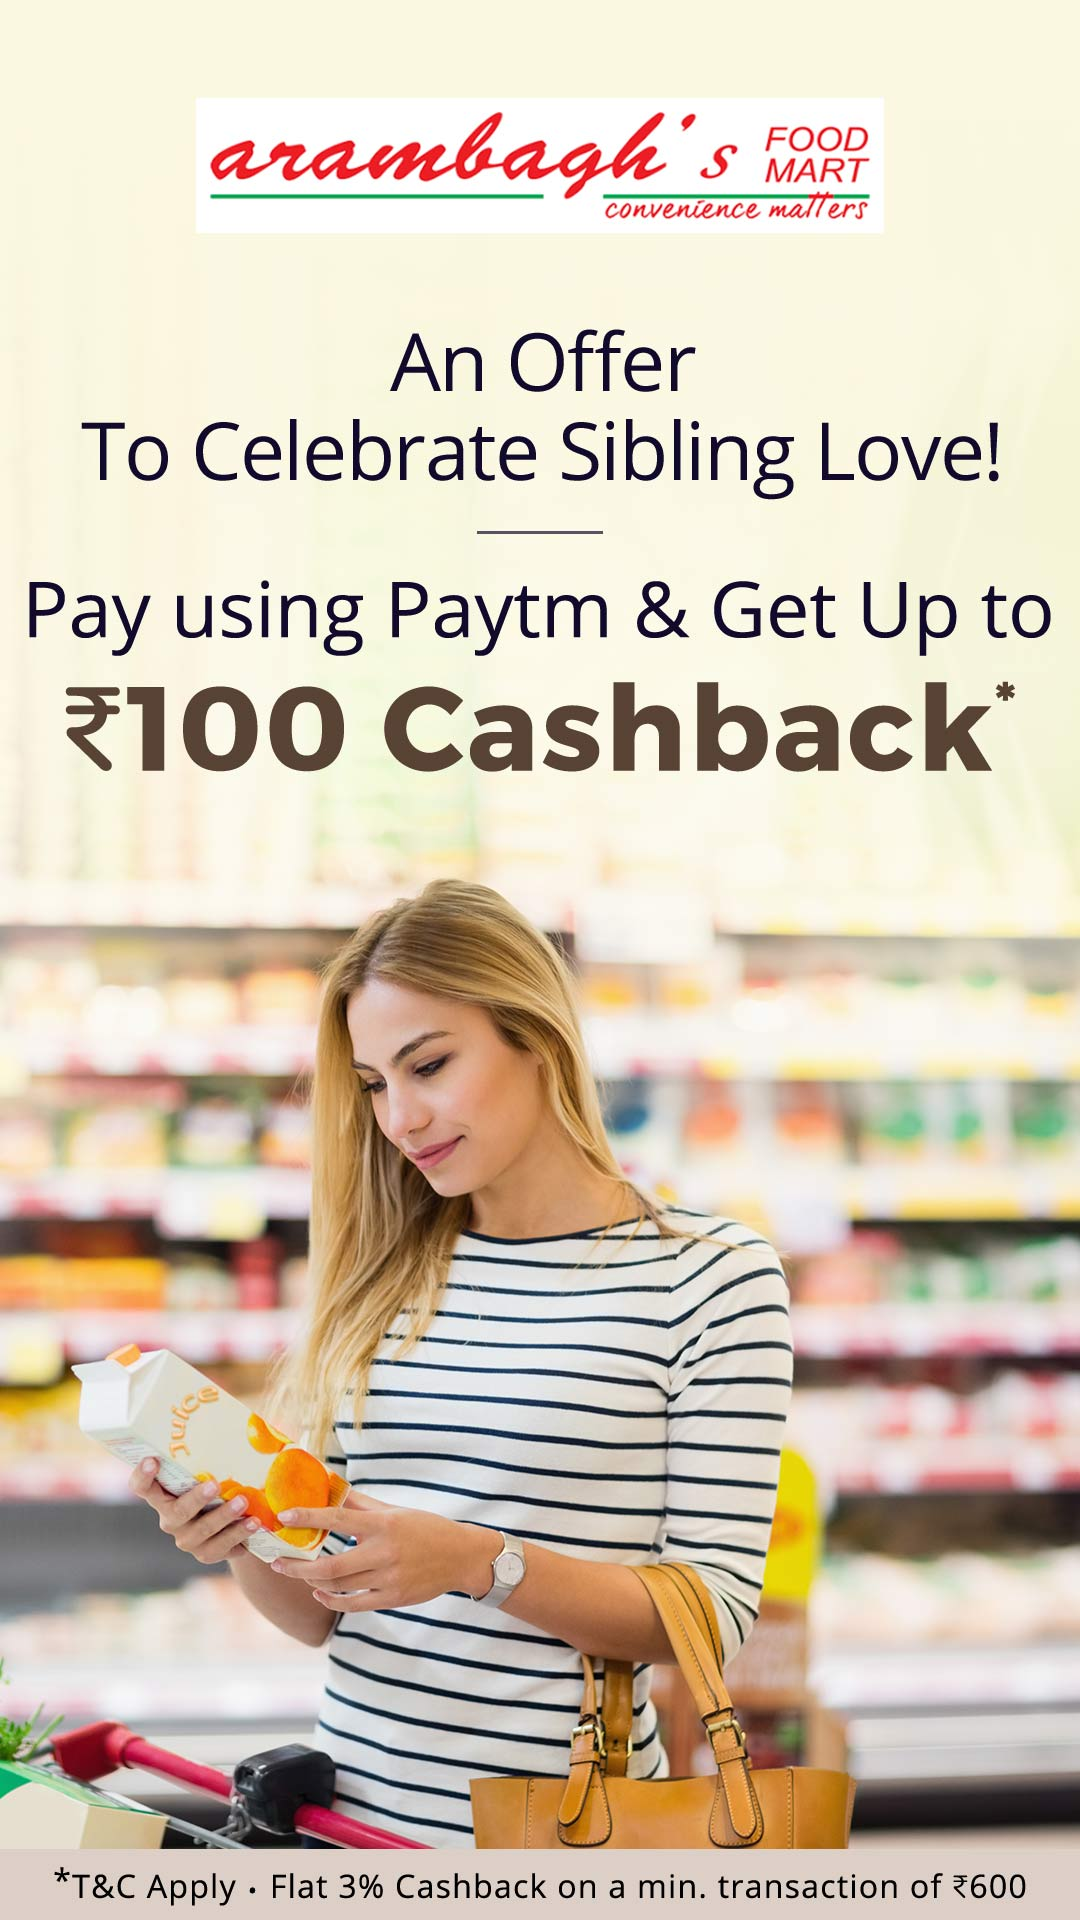 Women in the movie cashback happens